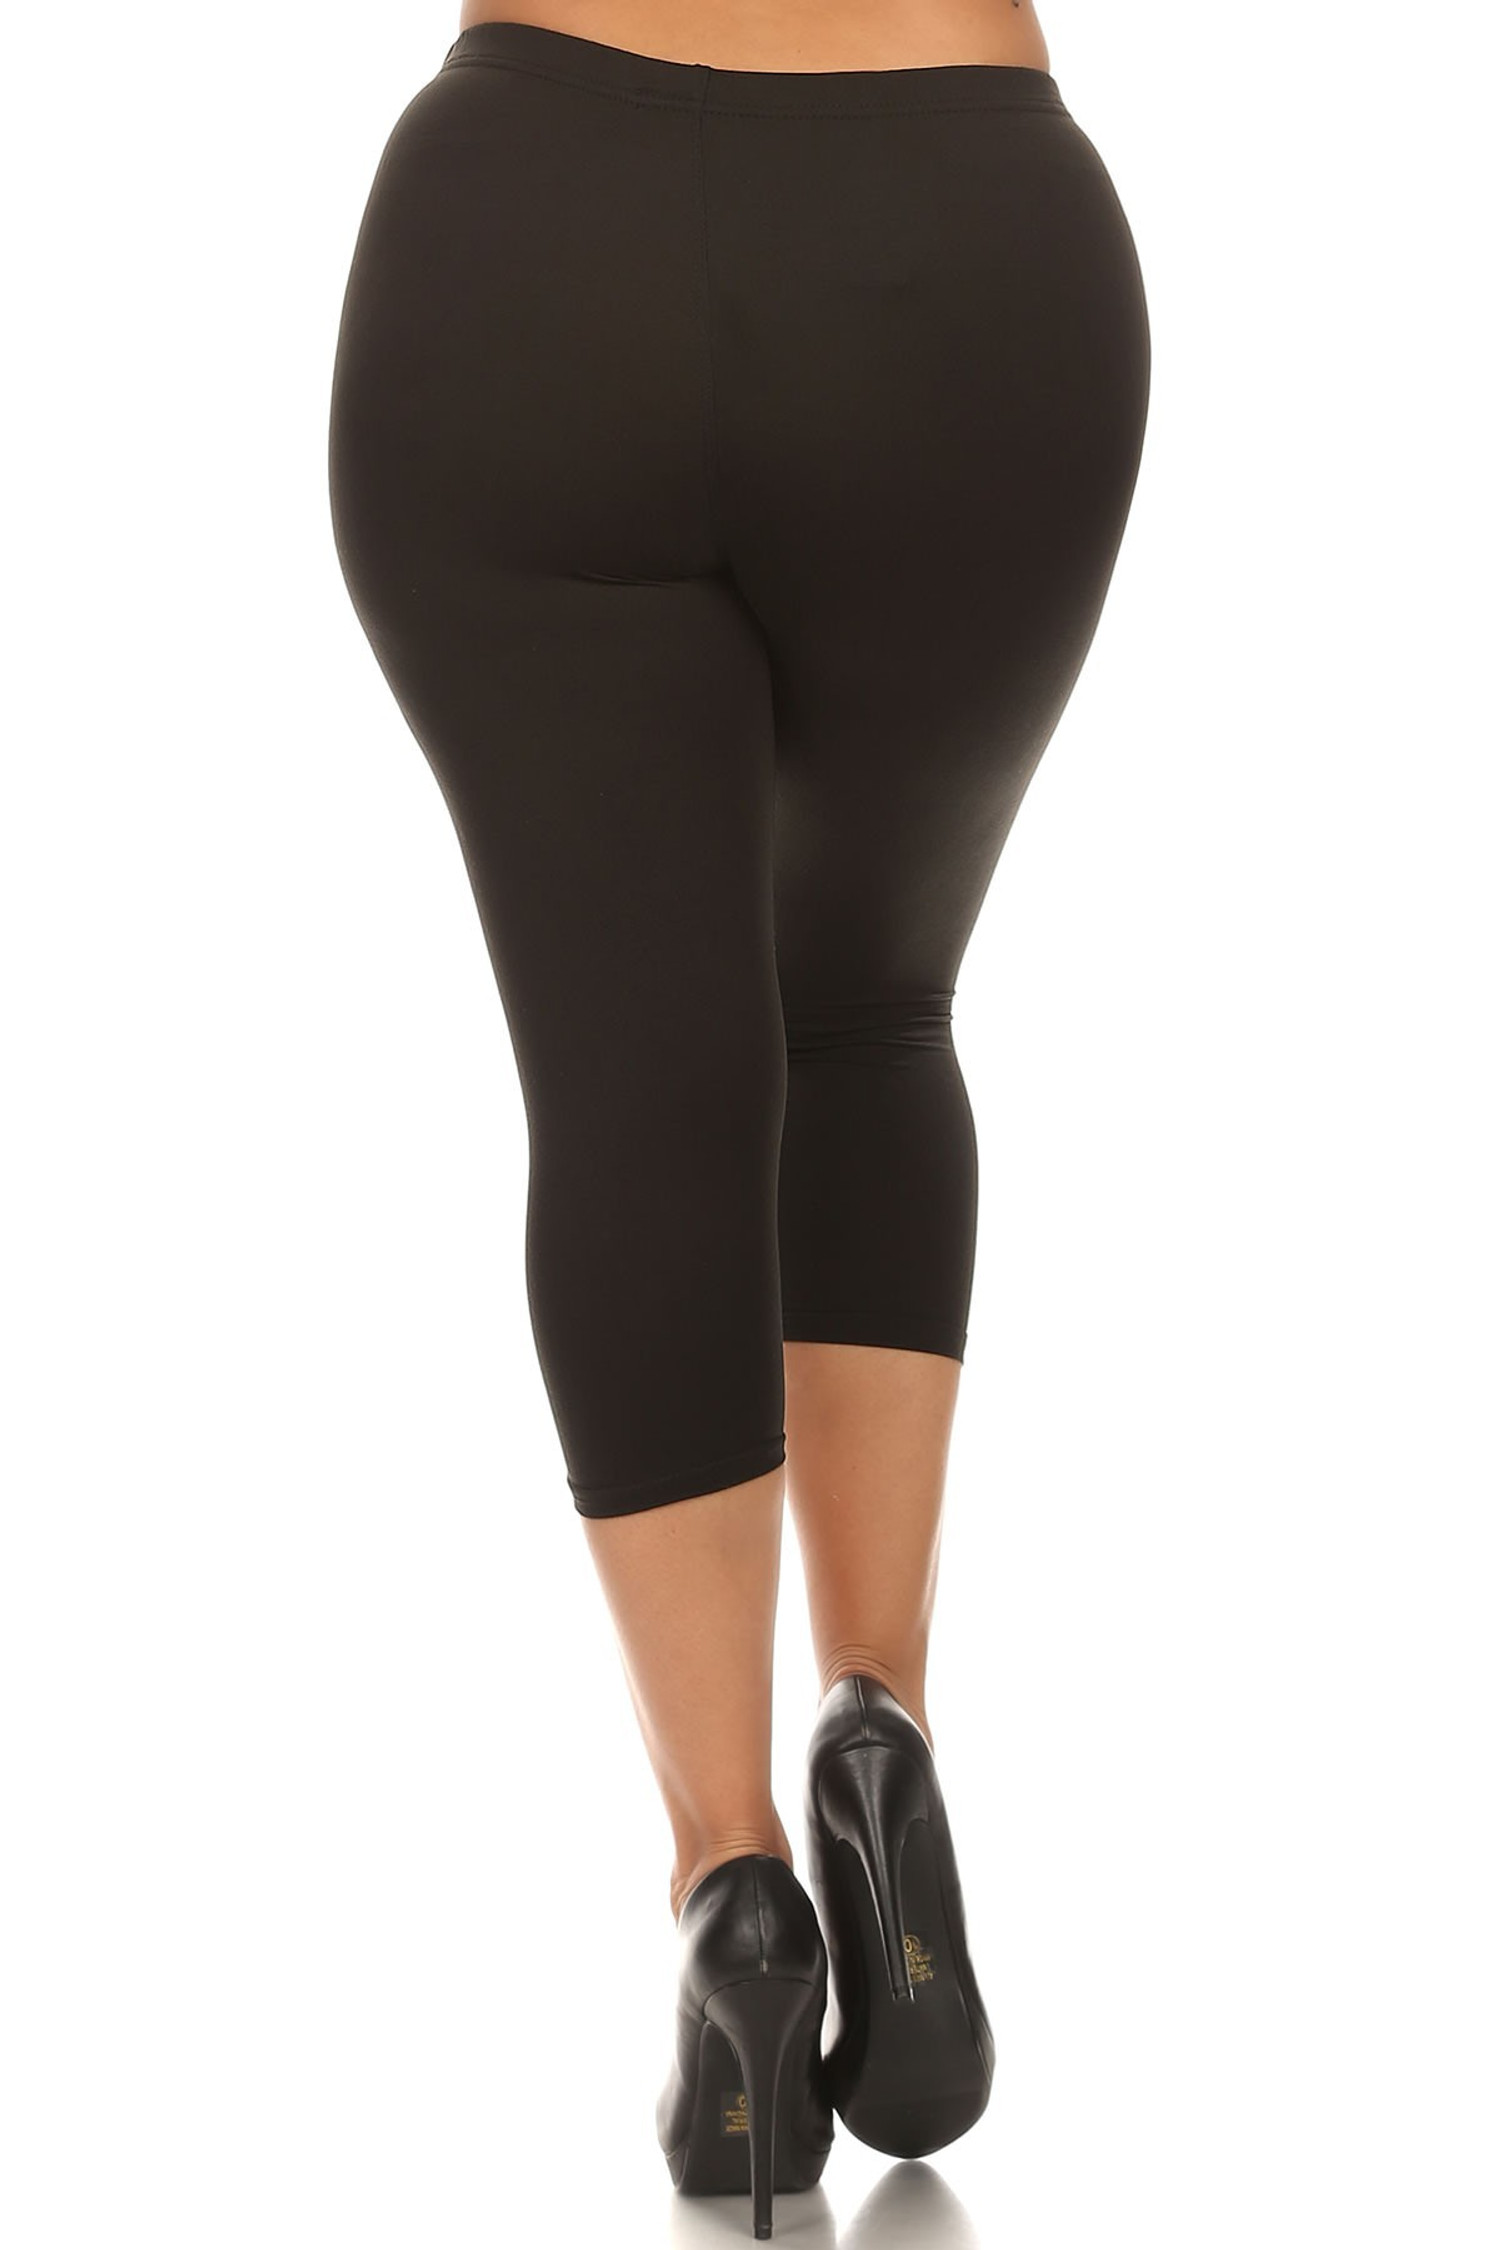 Back side image of Black Buttery Soft Basic Solid Extra Plus Size Capris - 3X-5X - New Mix